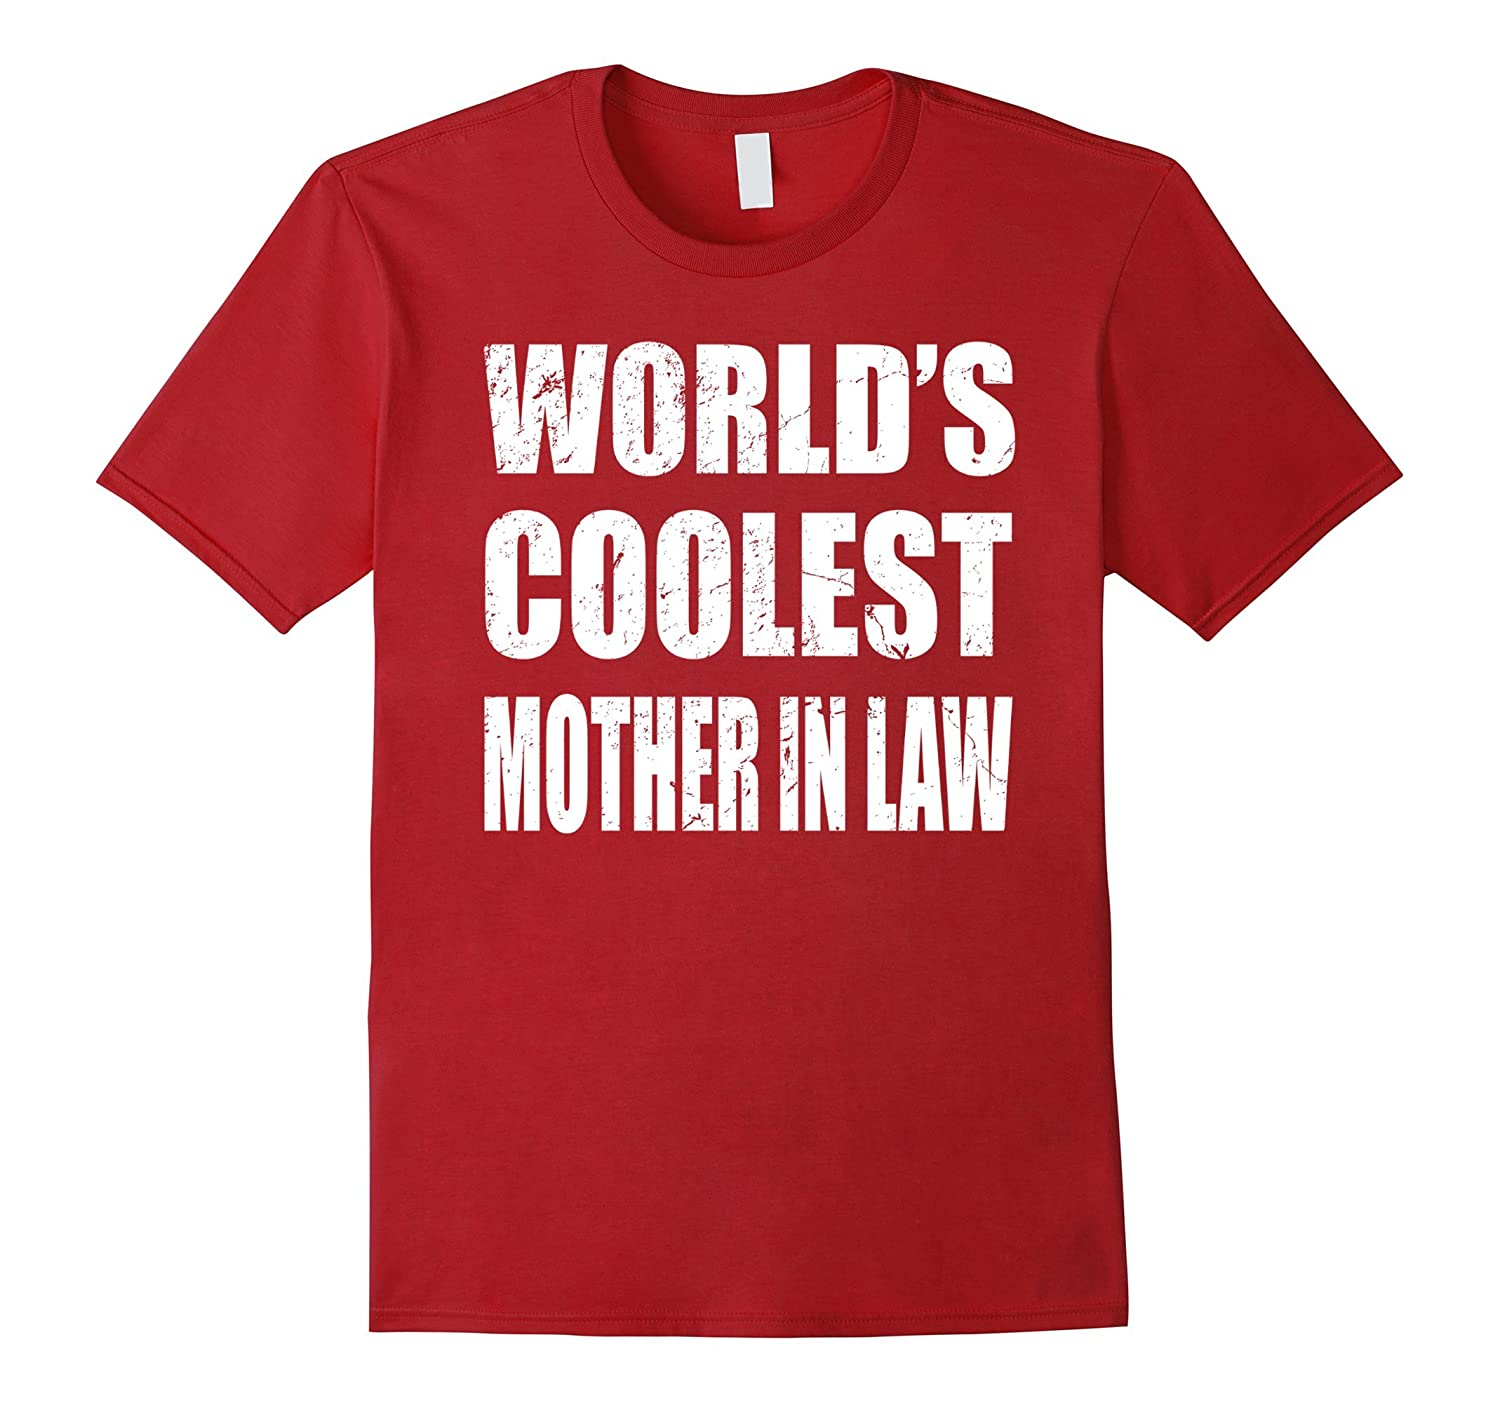 World's Coolest Mother In Law, Best Gift For Mother In Law